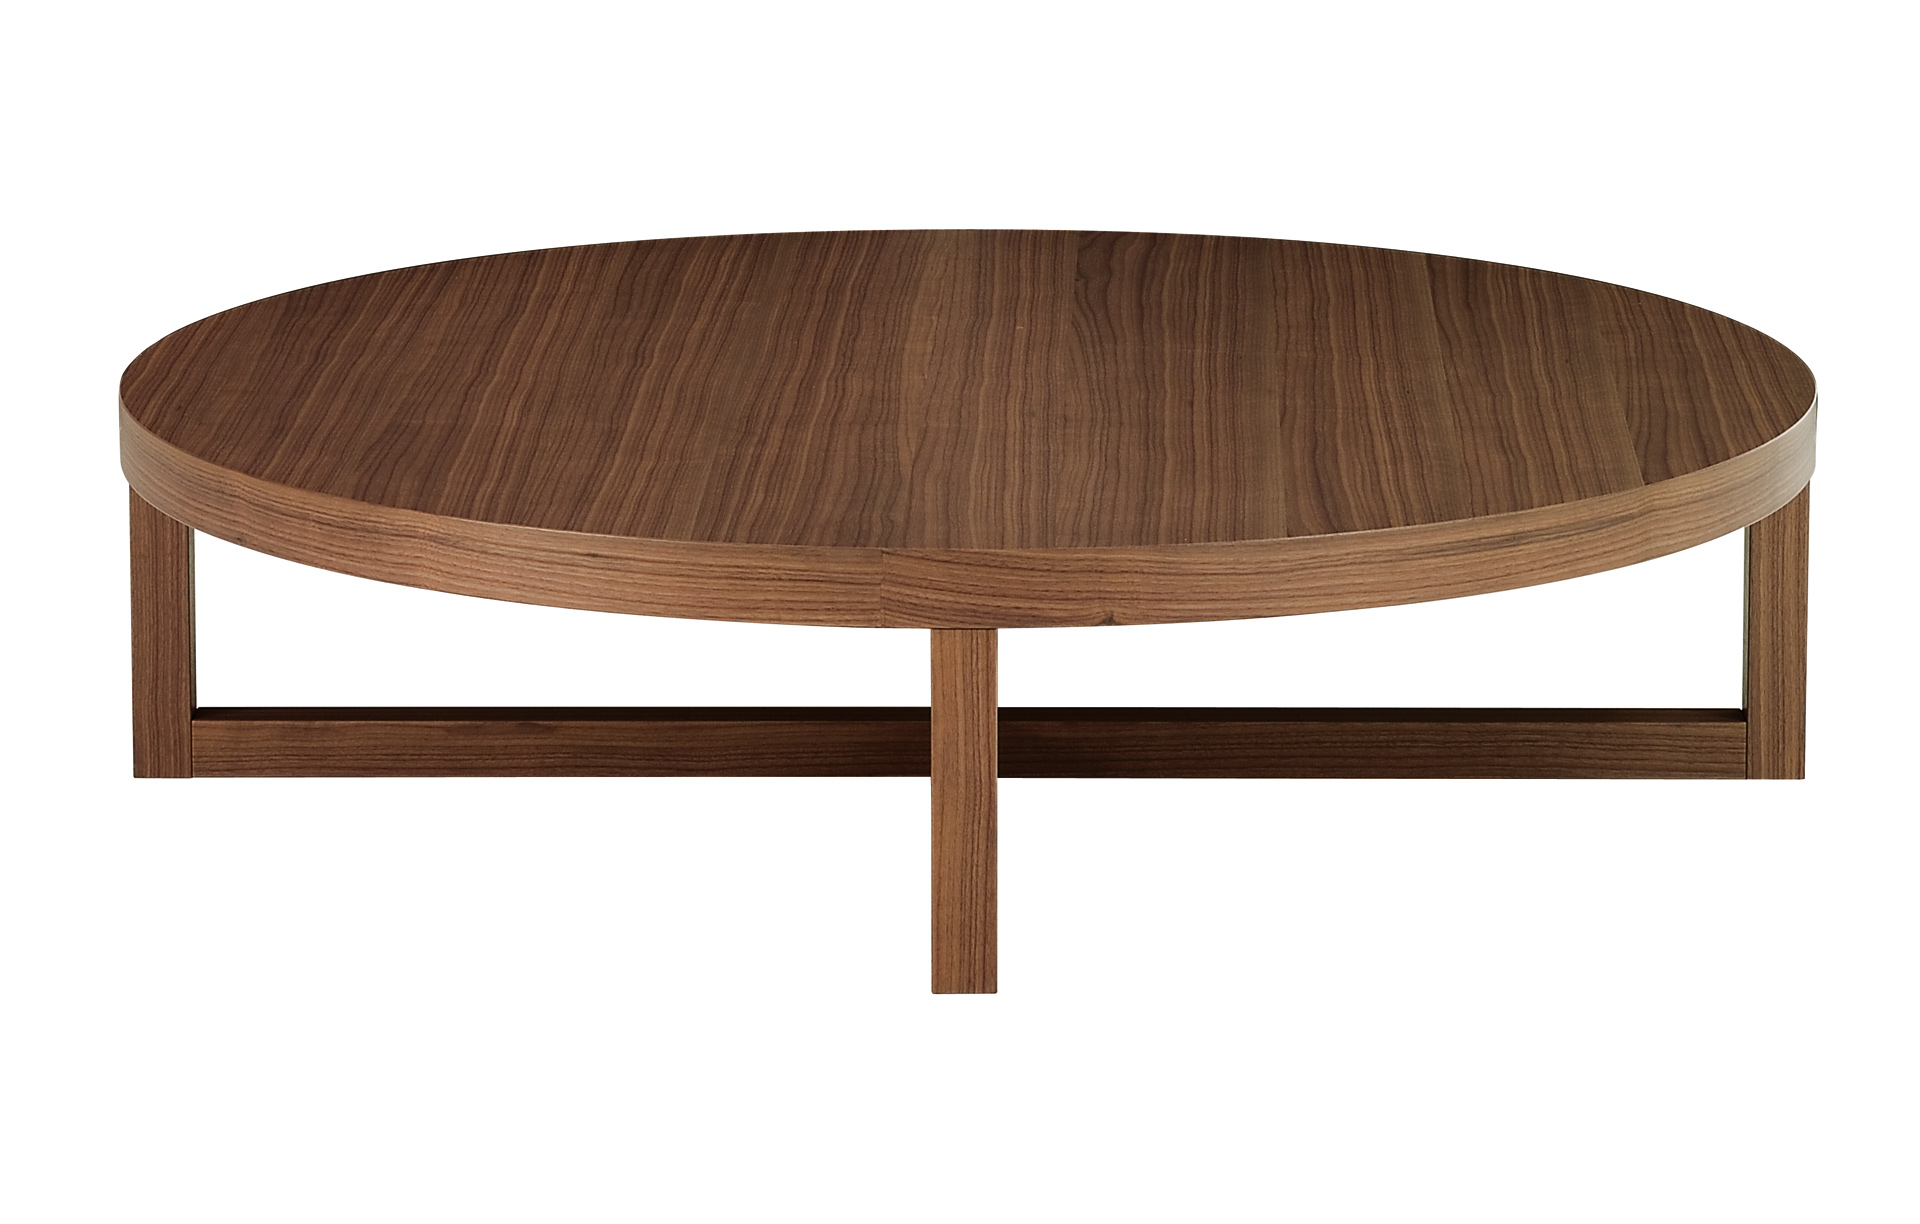 Low round wooden coffee table yard by poliform design paolo piva Round coffee tables